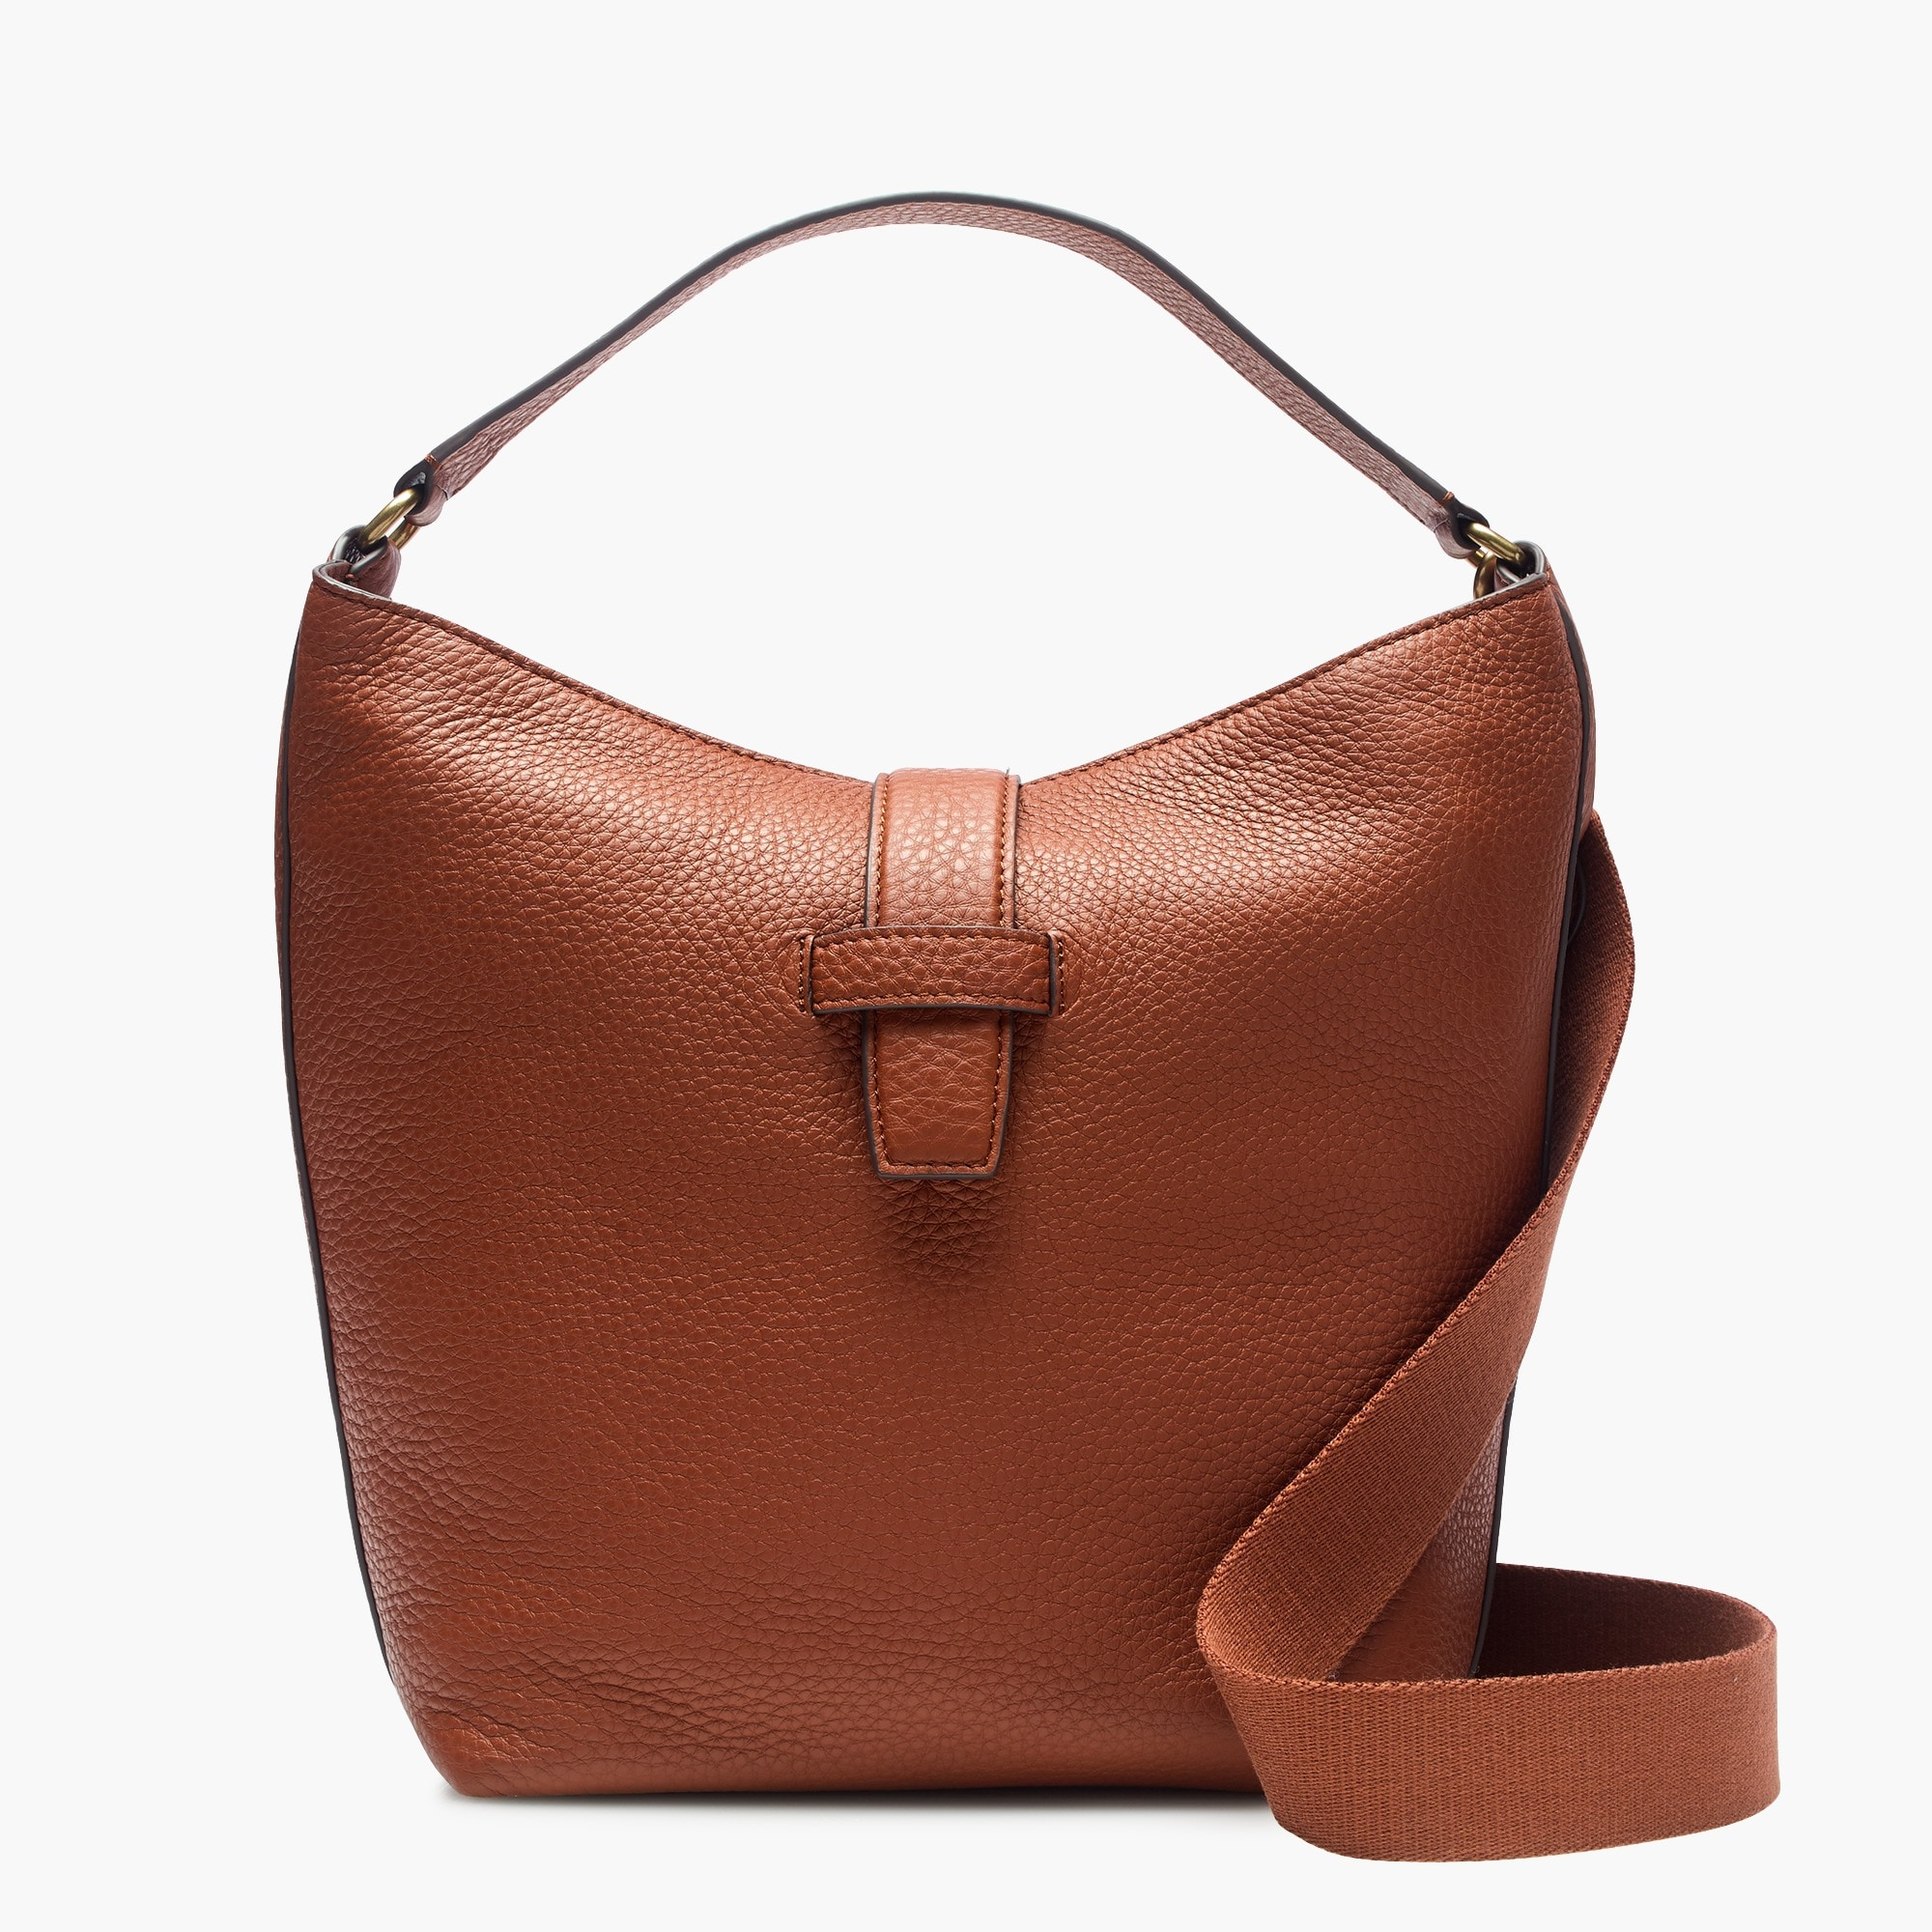 Image 4 for Signet hobo bag in Italian leather